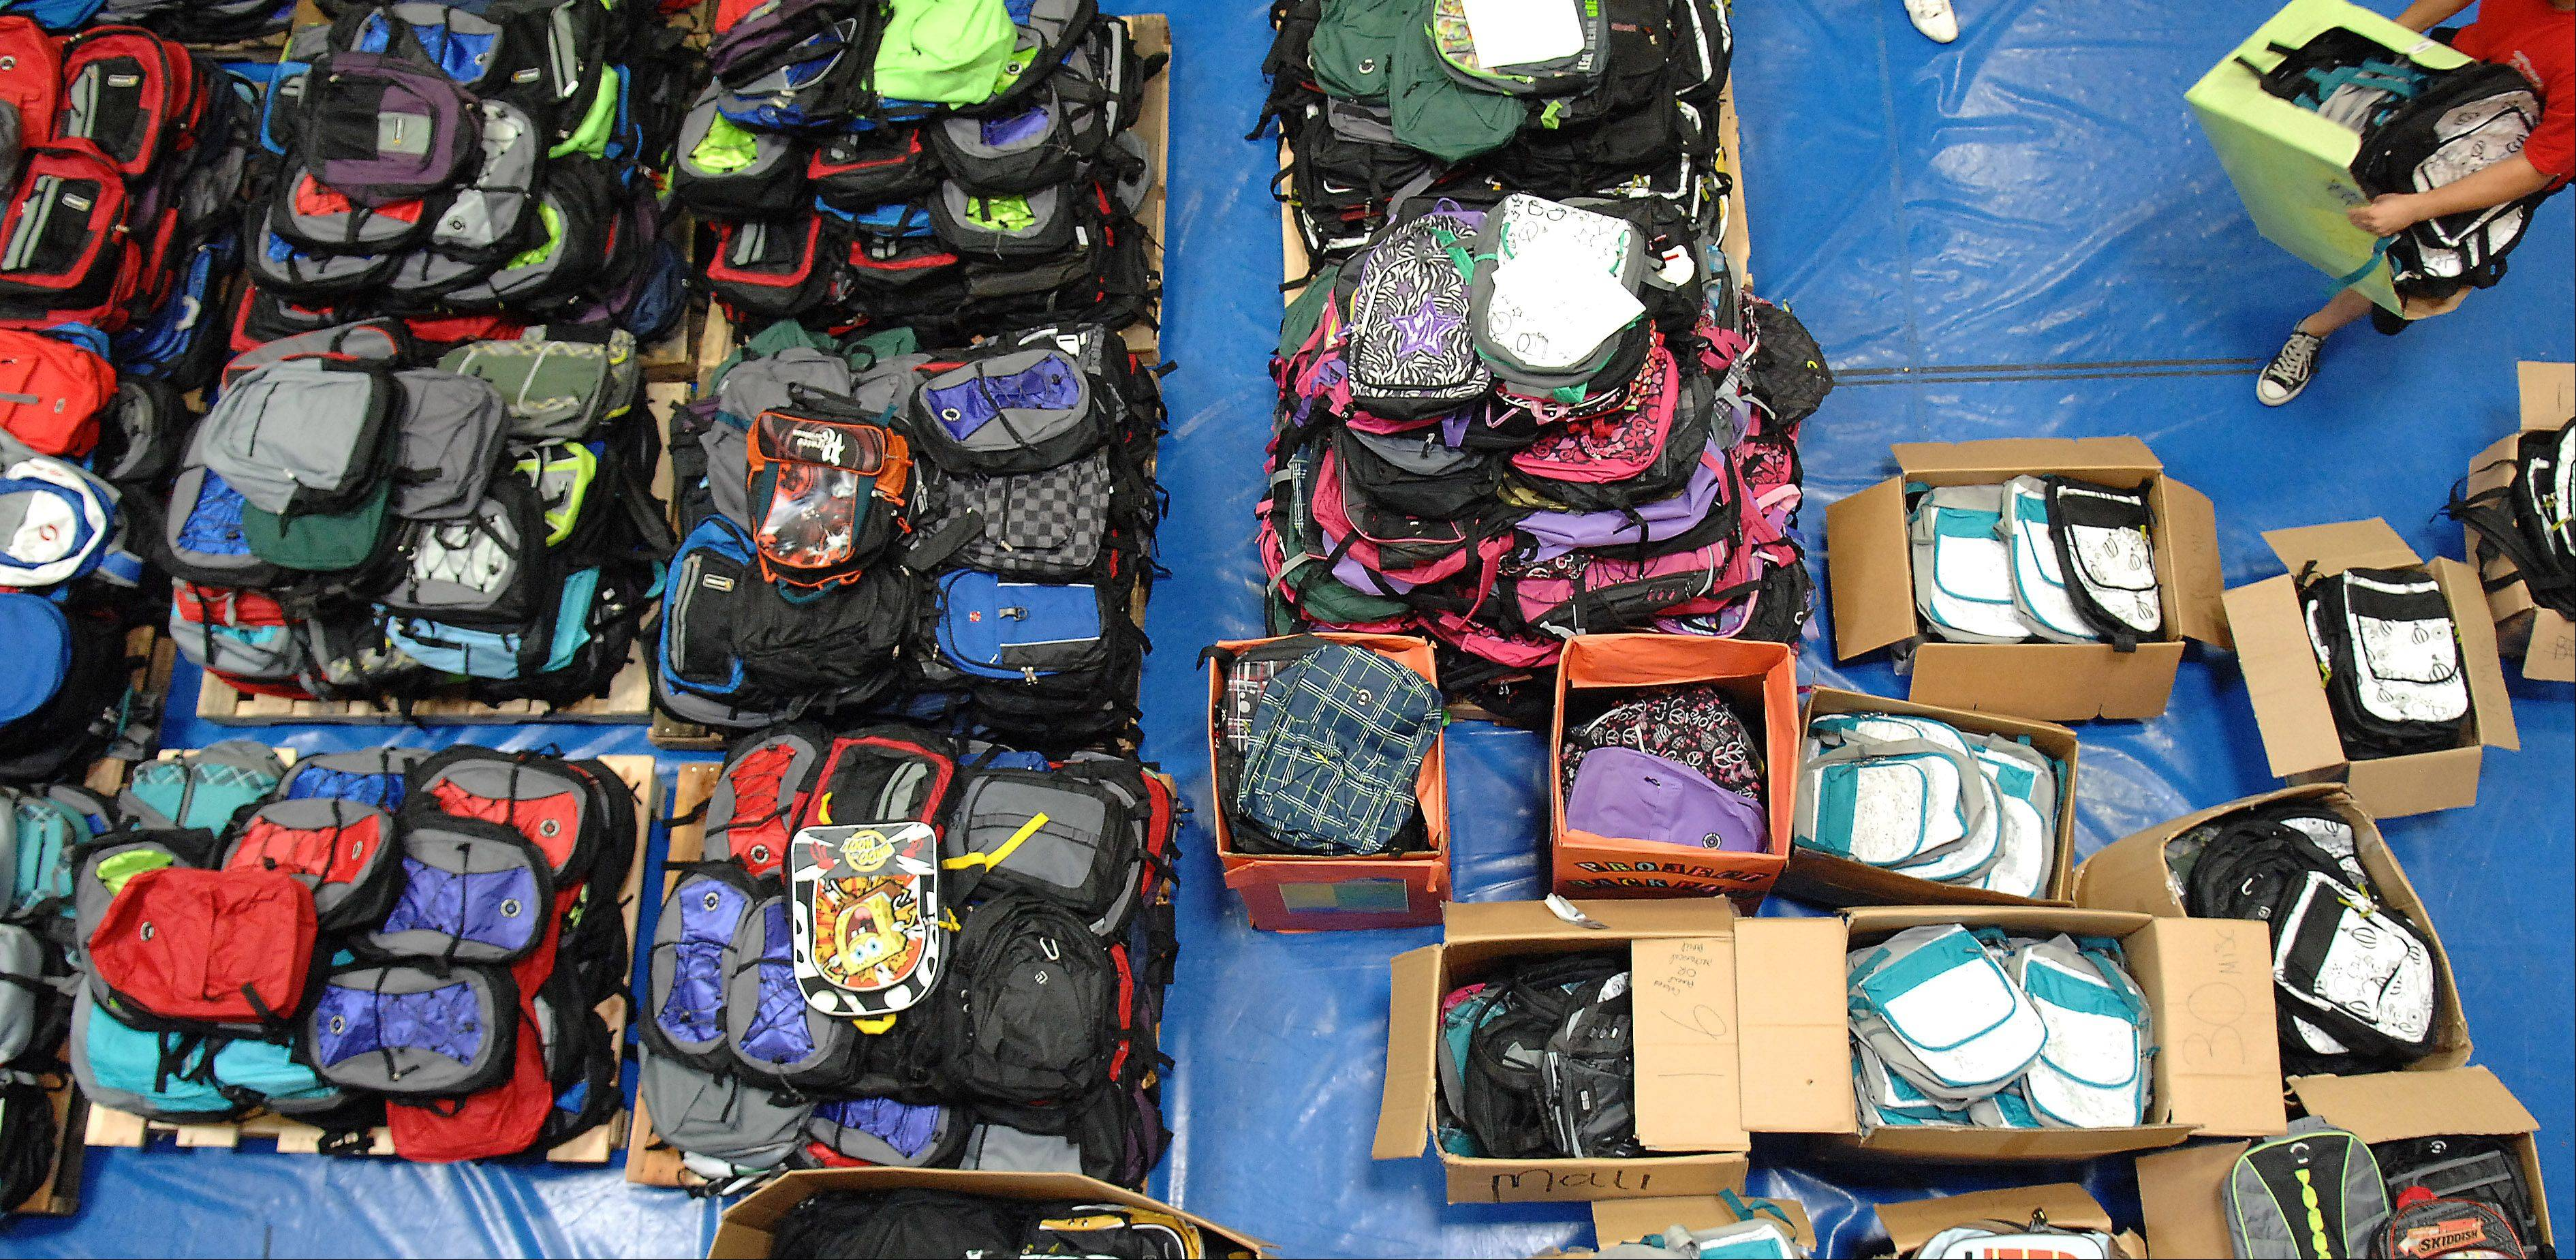 Volunteers packed about 1,800 backpacks with donated school supplies for Elgin Community College's annual school supply giveaway Saturday morning.